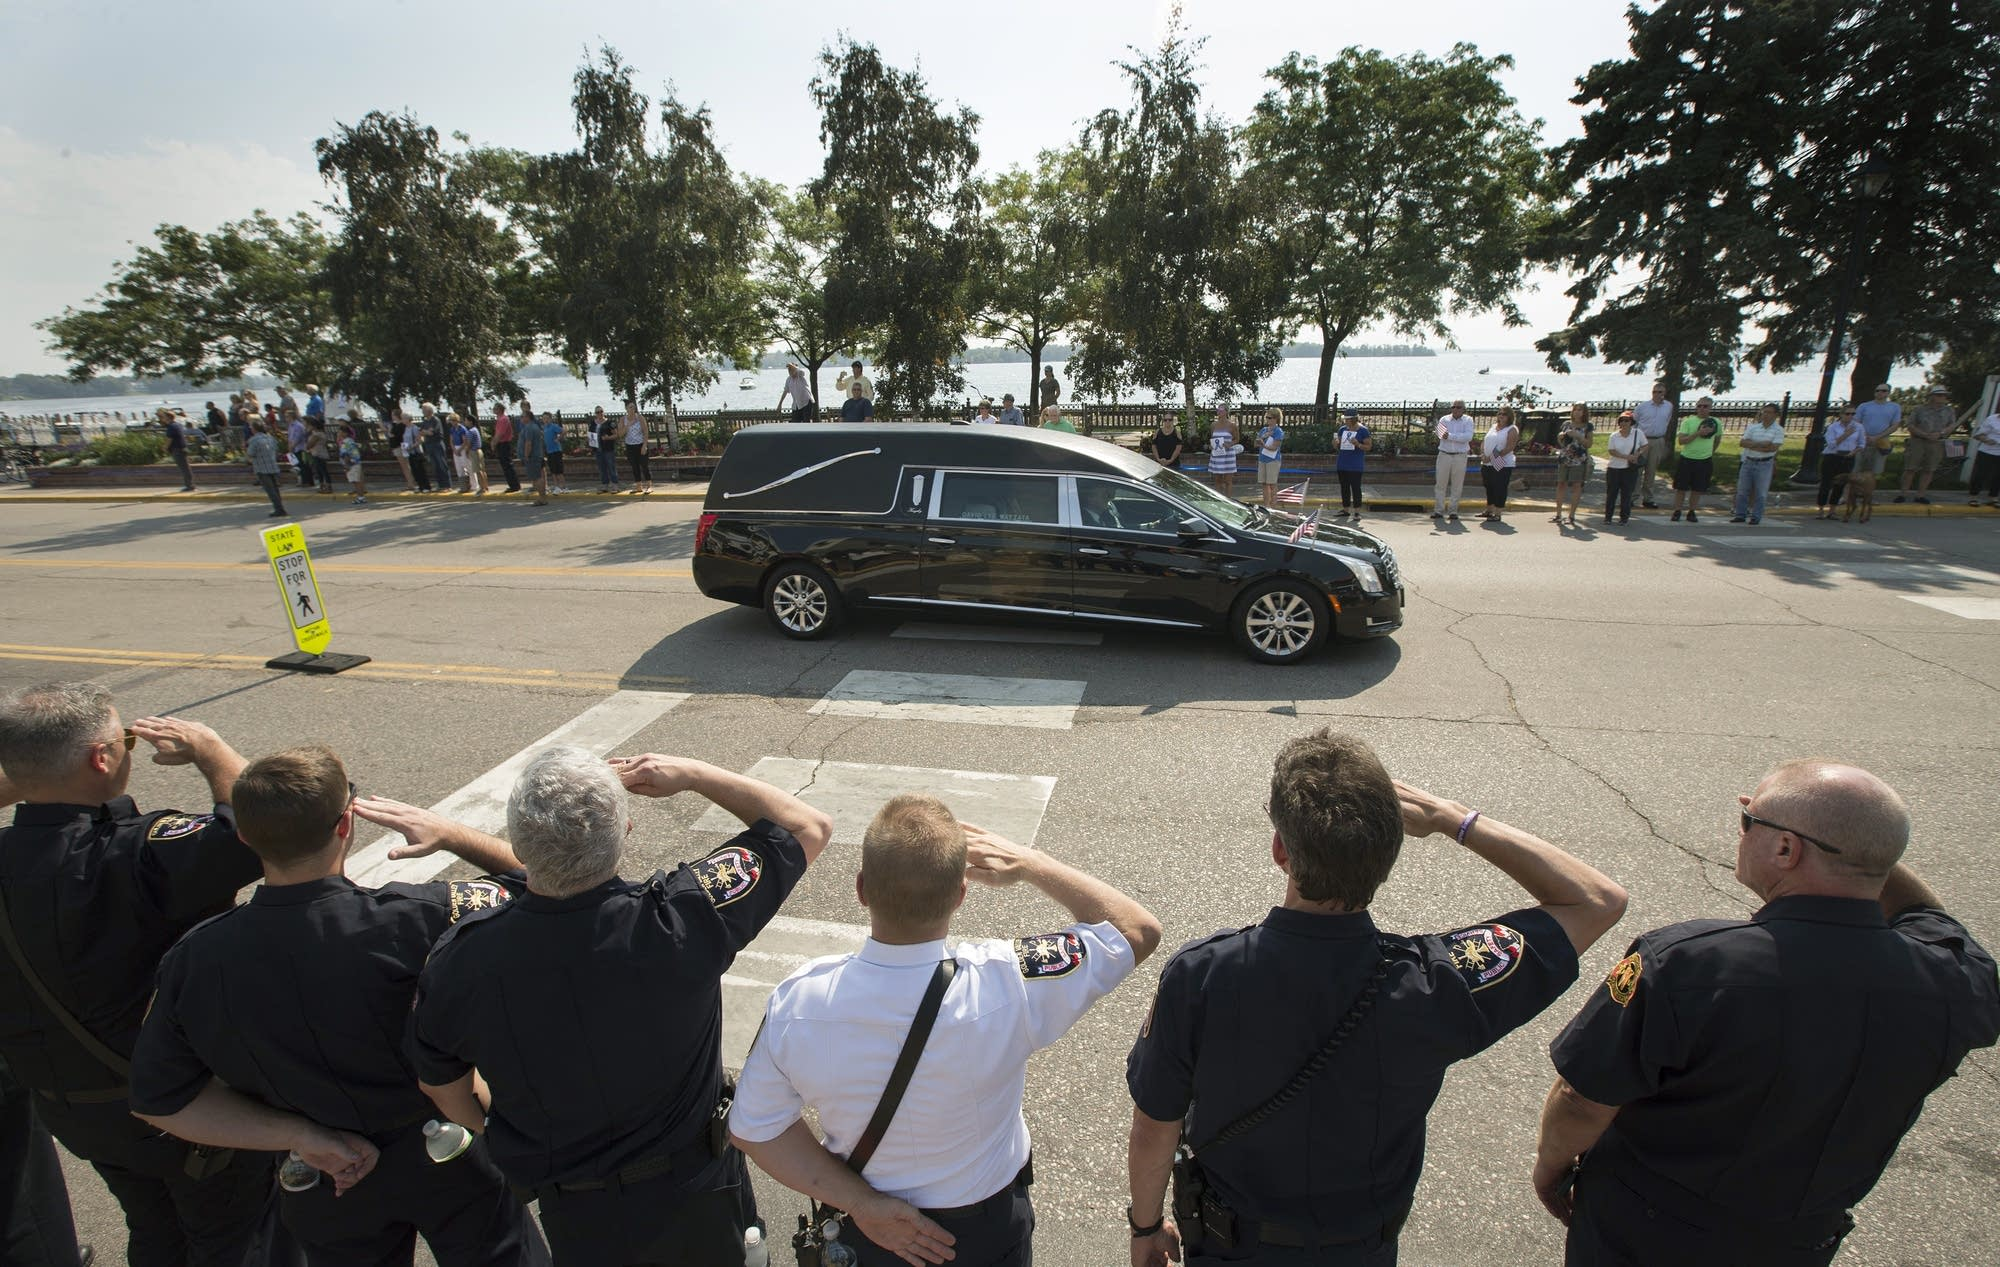 Police officers salute the funeral procession for officer Bill Mathews.